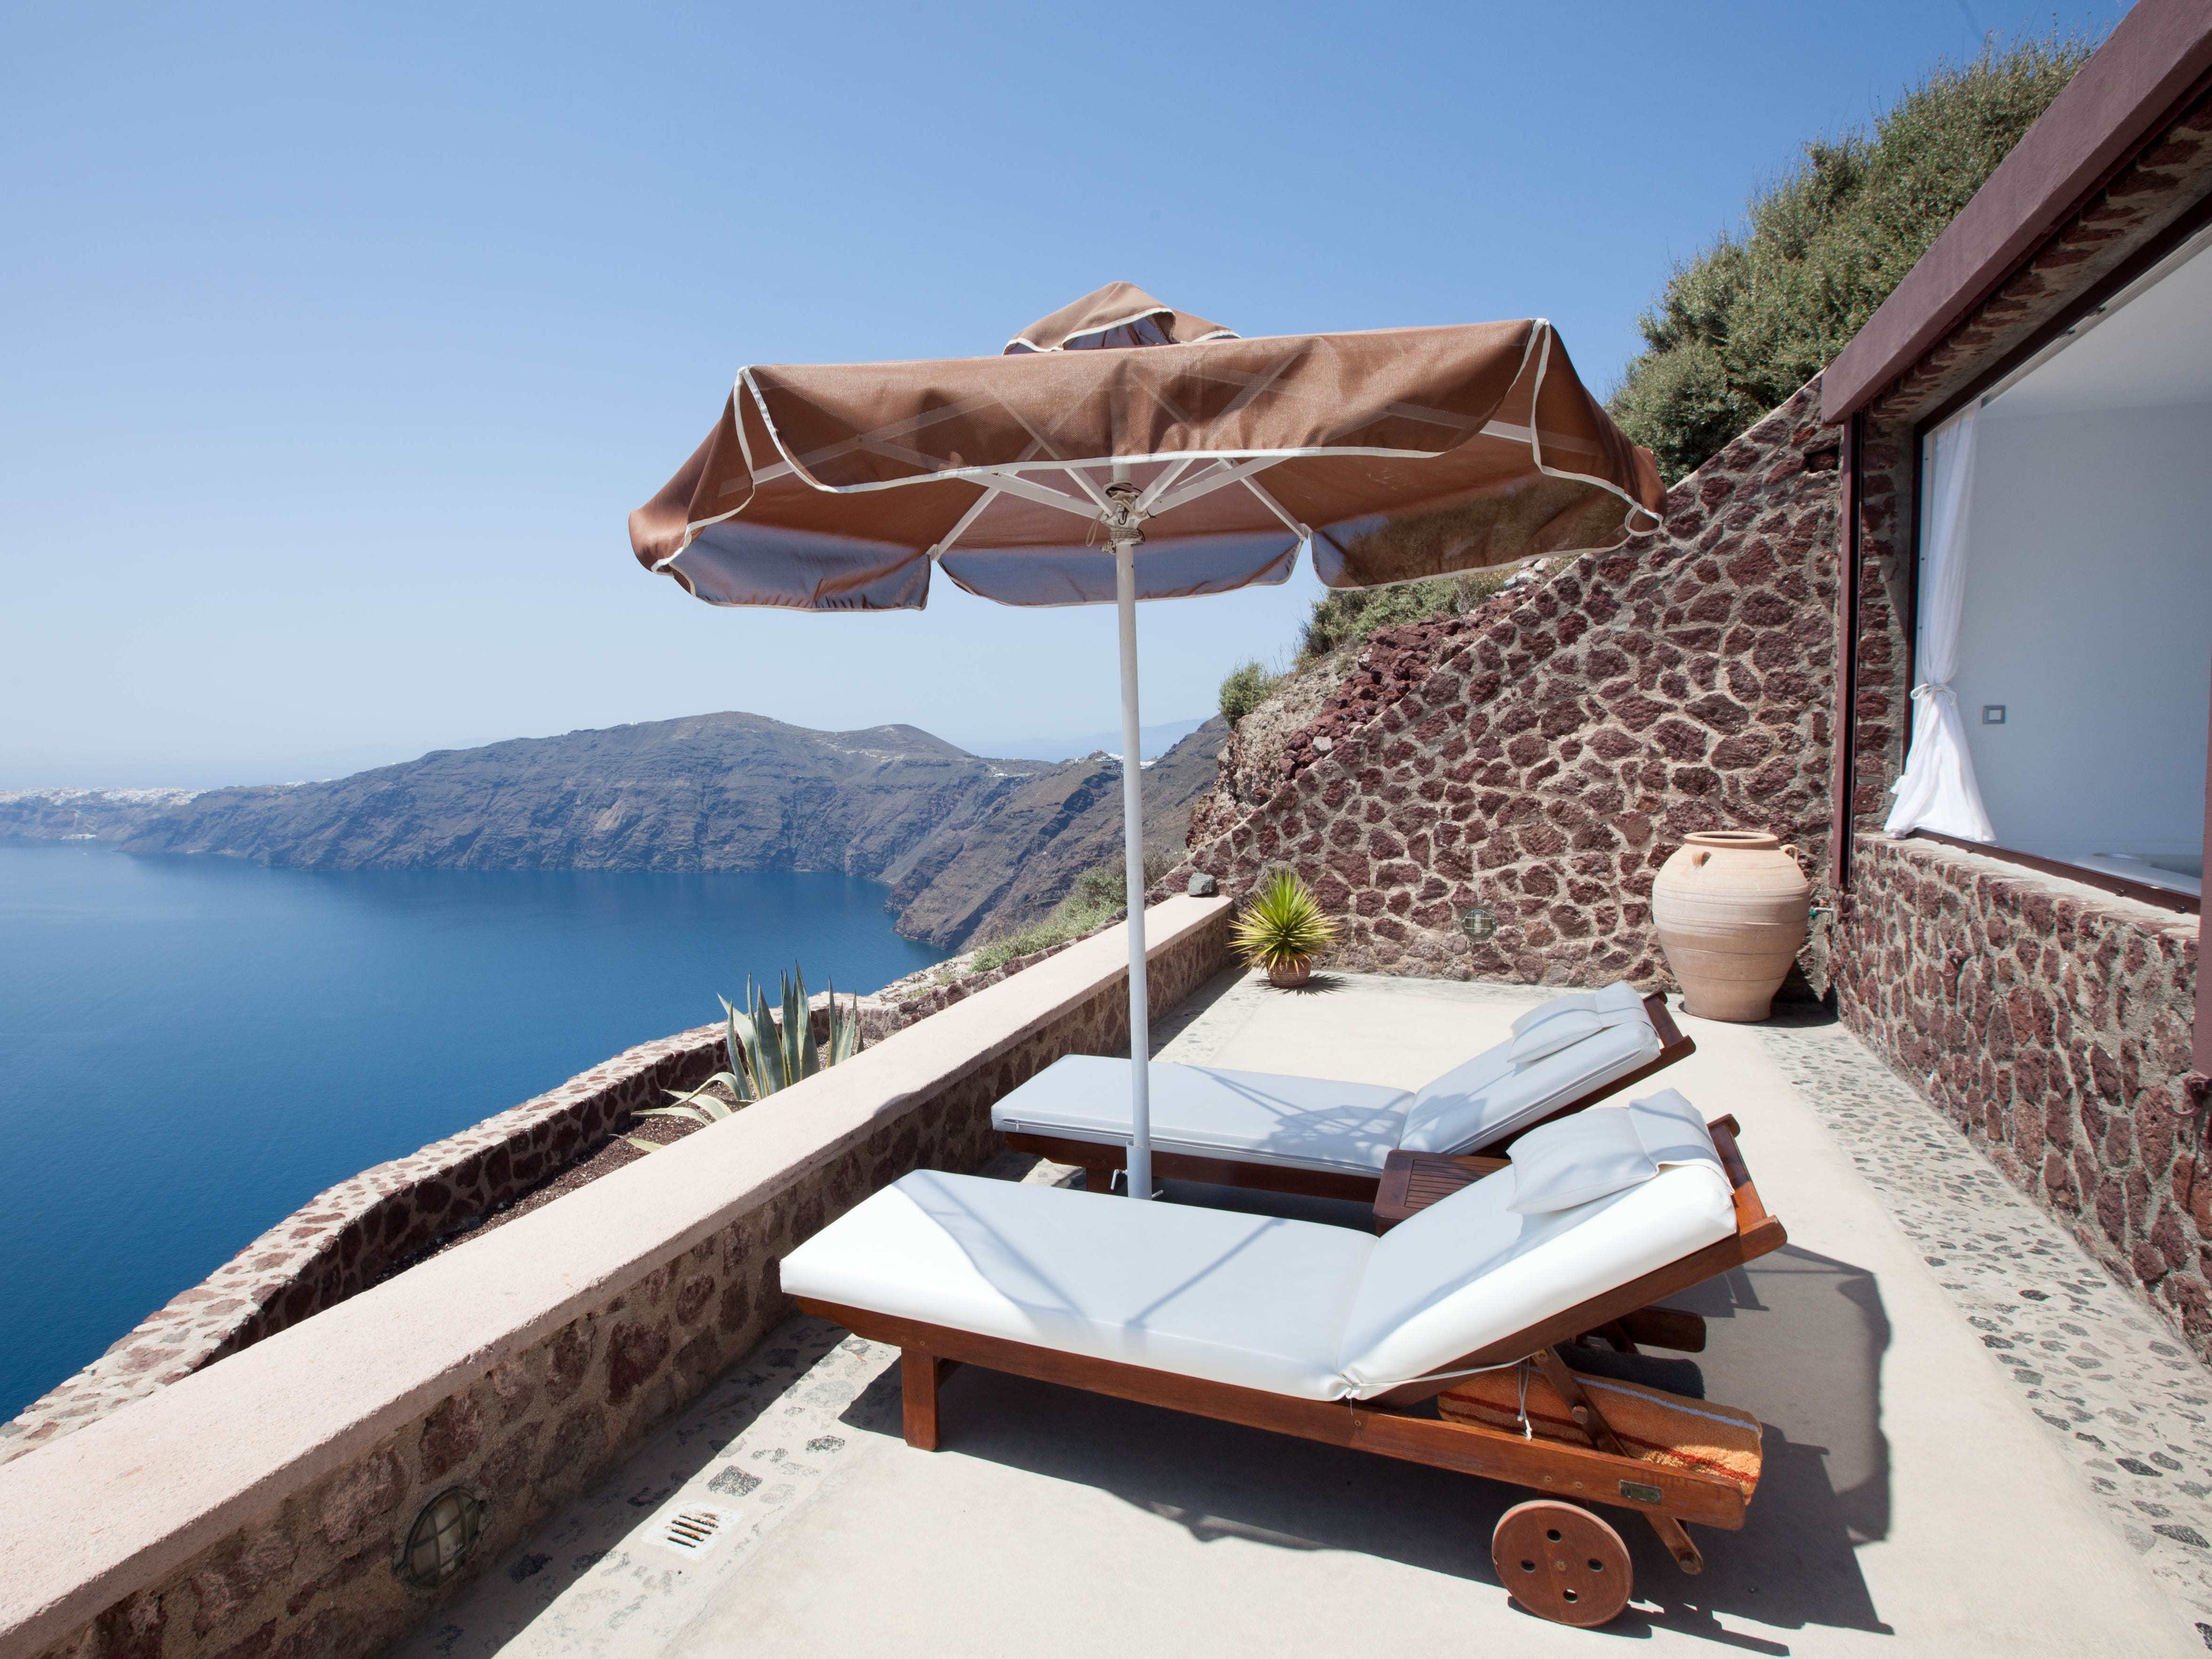 Anastasis Apartments: Located along the Imerovigli cliffs, Anastasis Apartments has many of the same trimmings of other Santorini hotels – iconic Cycladic architecture, a lovely infinity pool with out-of-this-world views, and large apartments with private balconies and kitchenettes. However, it stands out for what it lacks: steep steps, making it great for anyone with mobility issues. Bonus: It's within walking distance of bars and restaurants, but leave time to soak in the property, including the romantic cave-like spa.